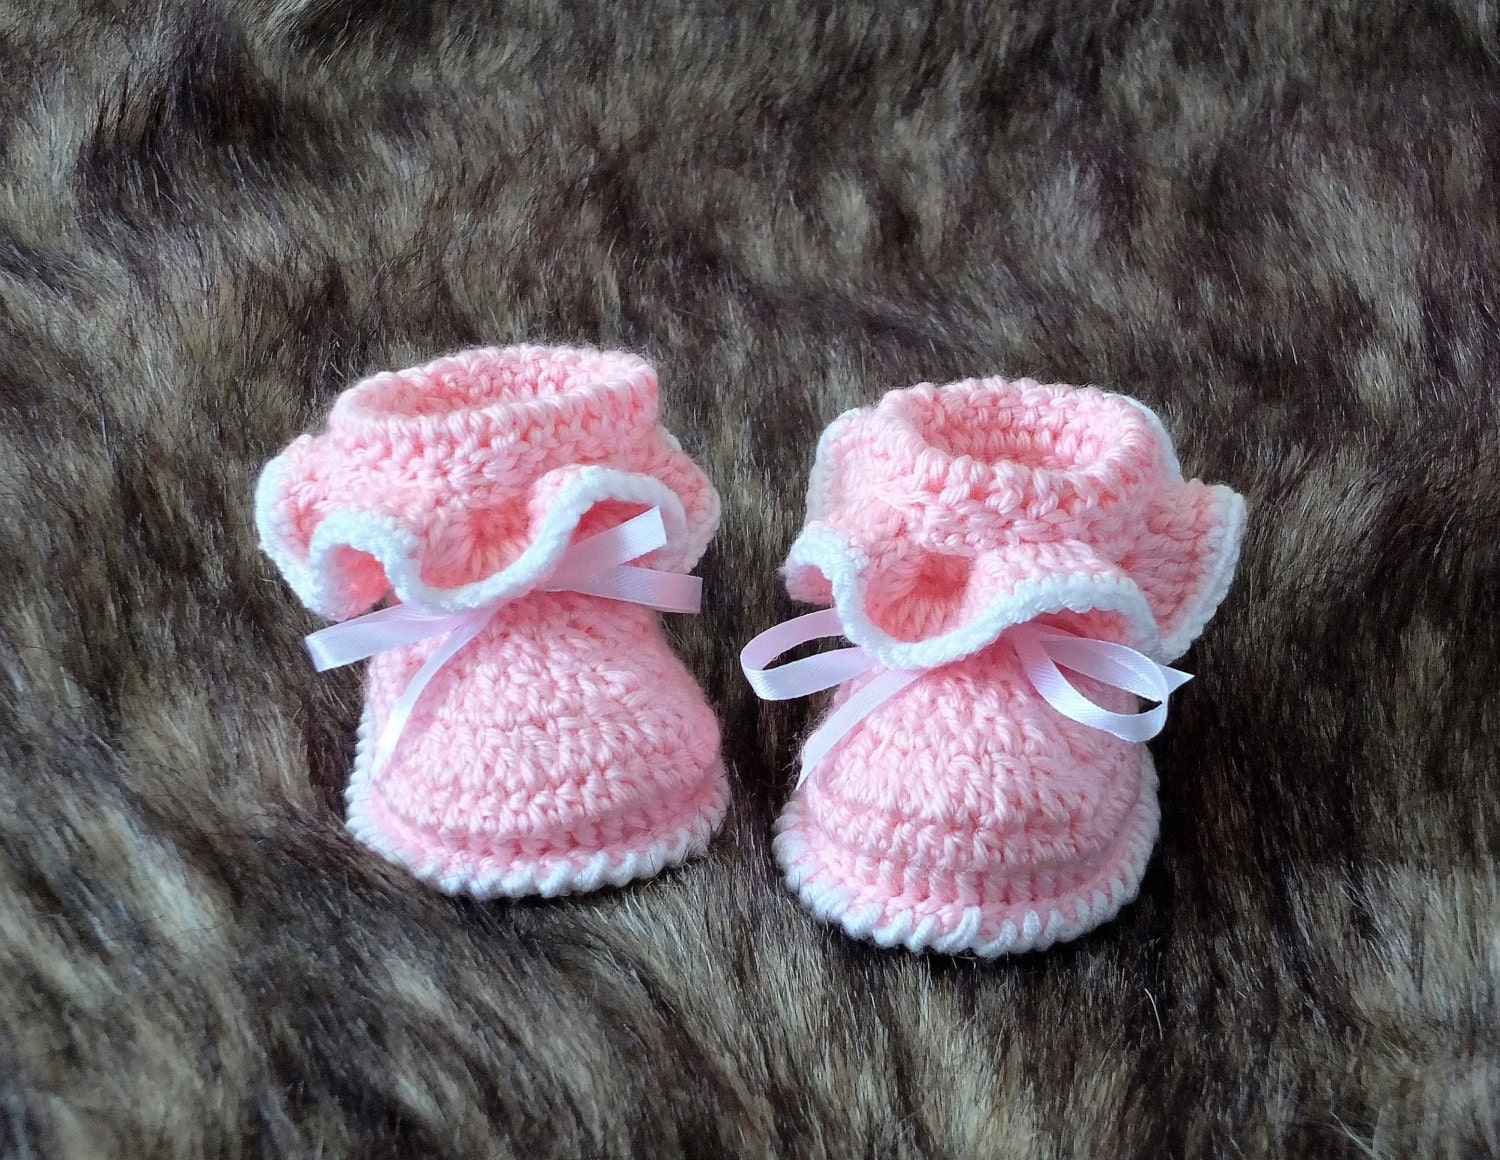 Booties. These crochet baby booties are just too cute! Learn how to crochet baby booties, sandals, and more with these free patterns. Find crochet baby bootie tutorials, baby shoe patterns, and other adorable ideas here.